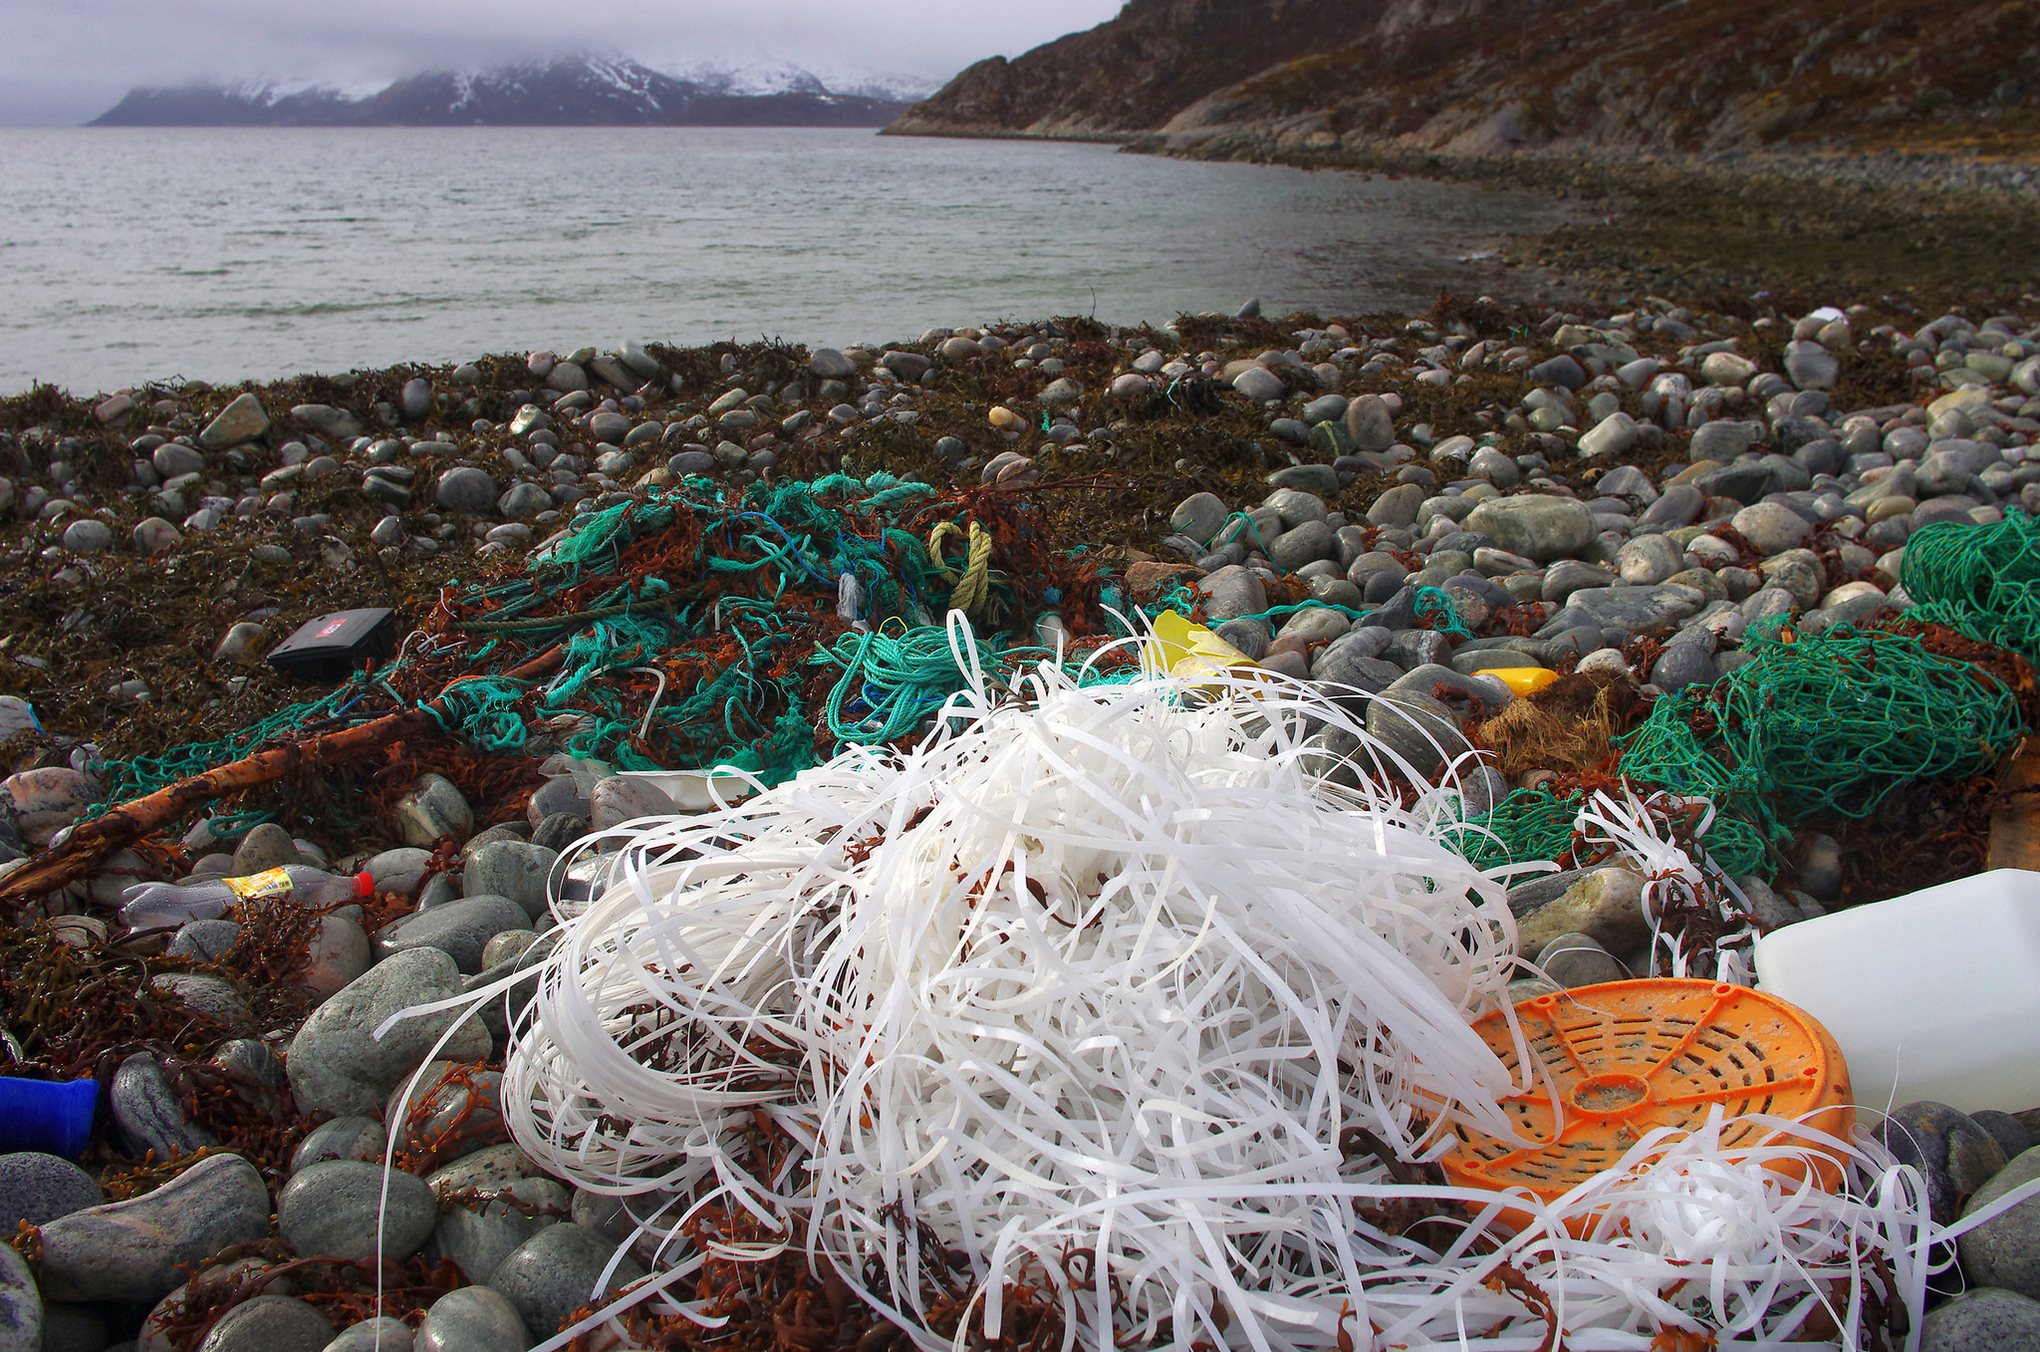 Every single ocean now has a massive swirling garbage patch